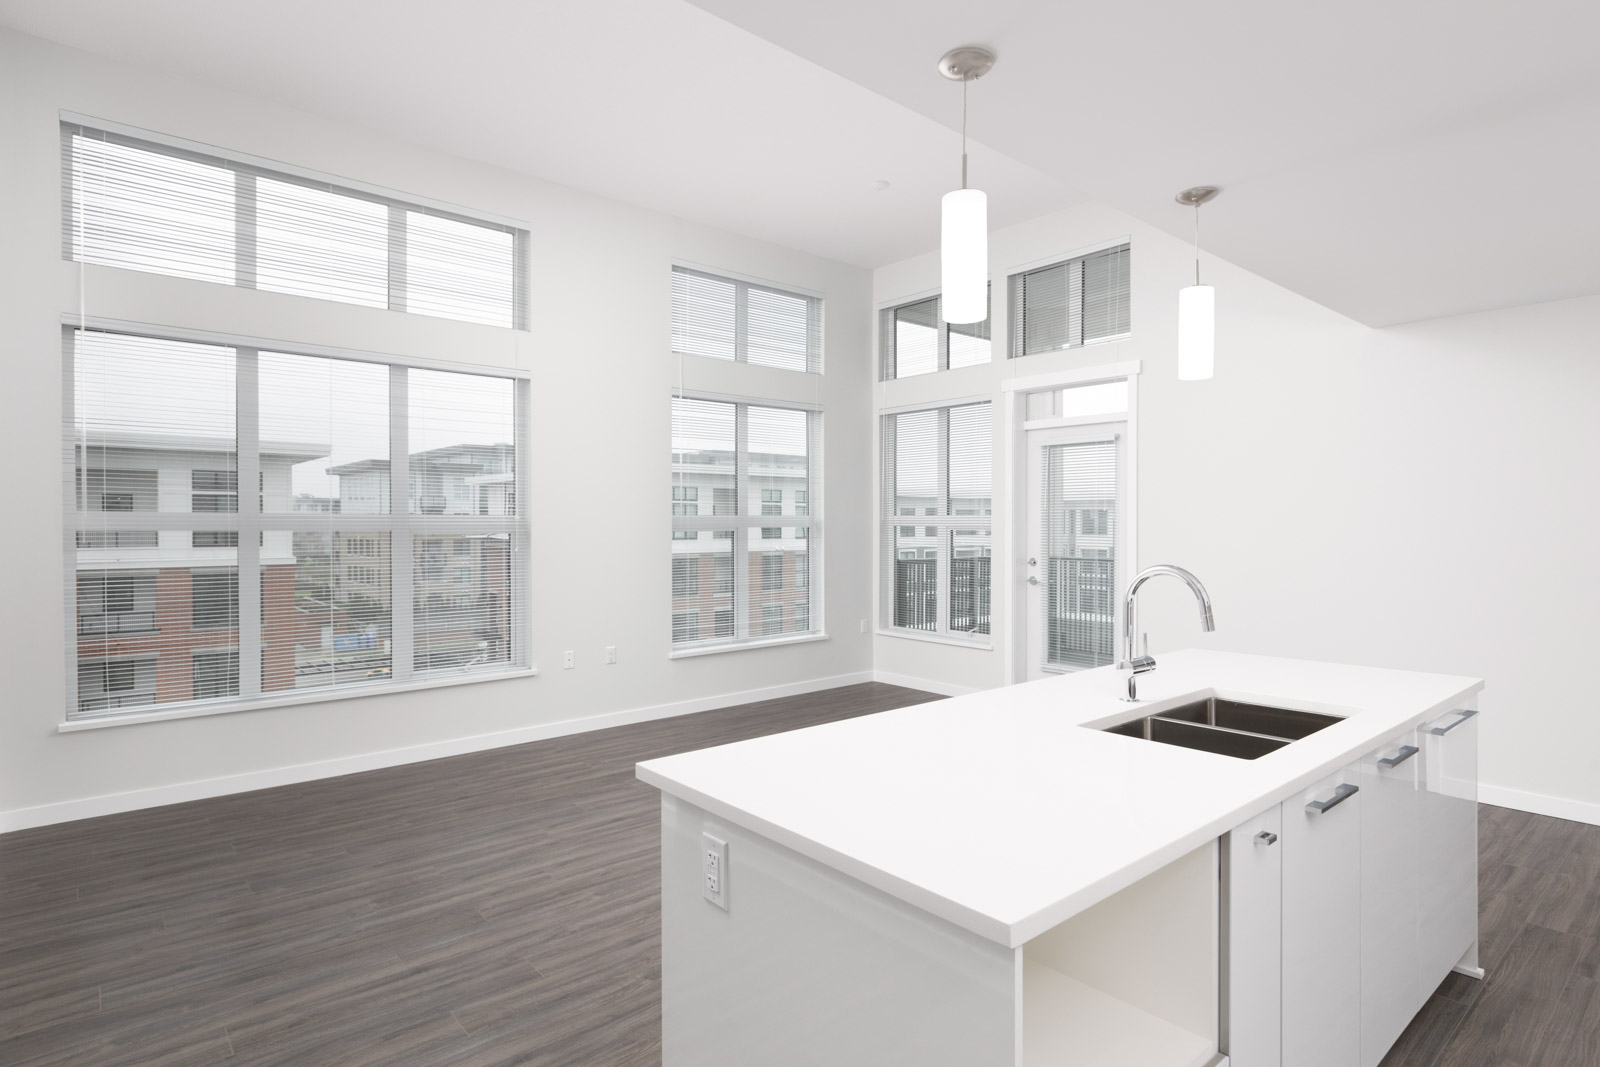 white kitchen counter in living room of rental townhouse in richmond with windows